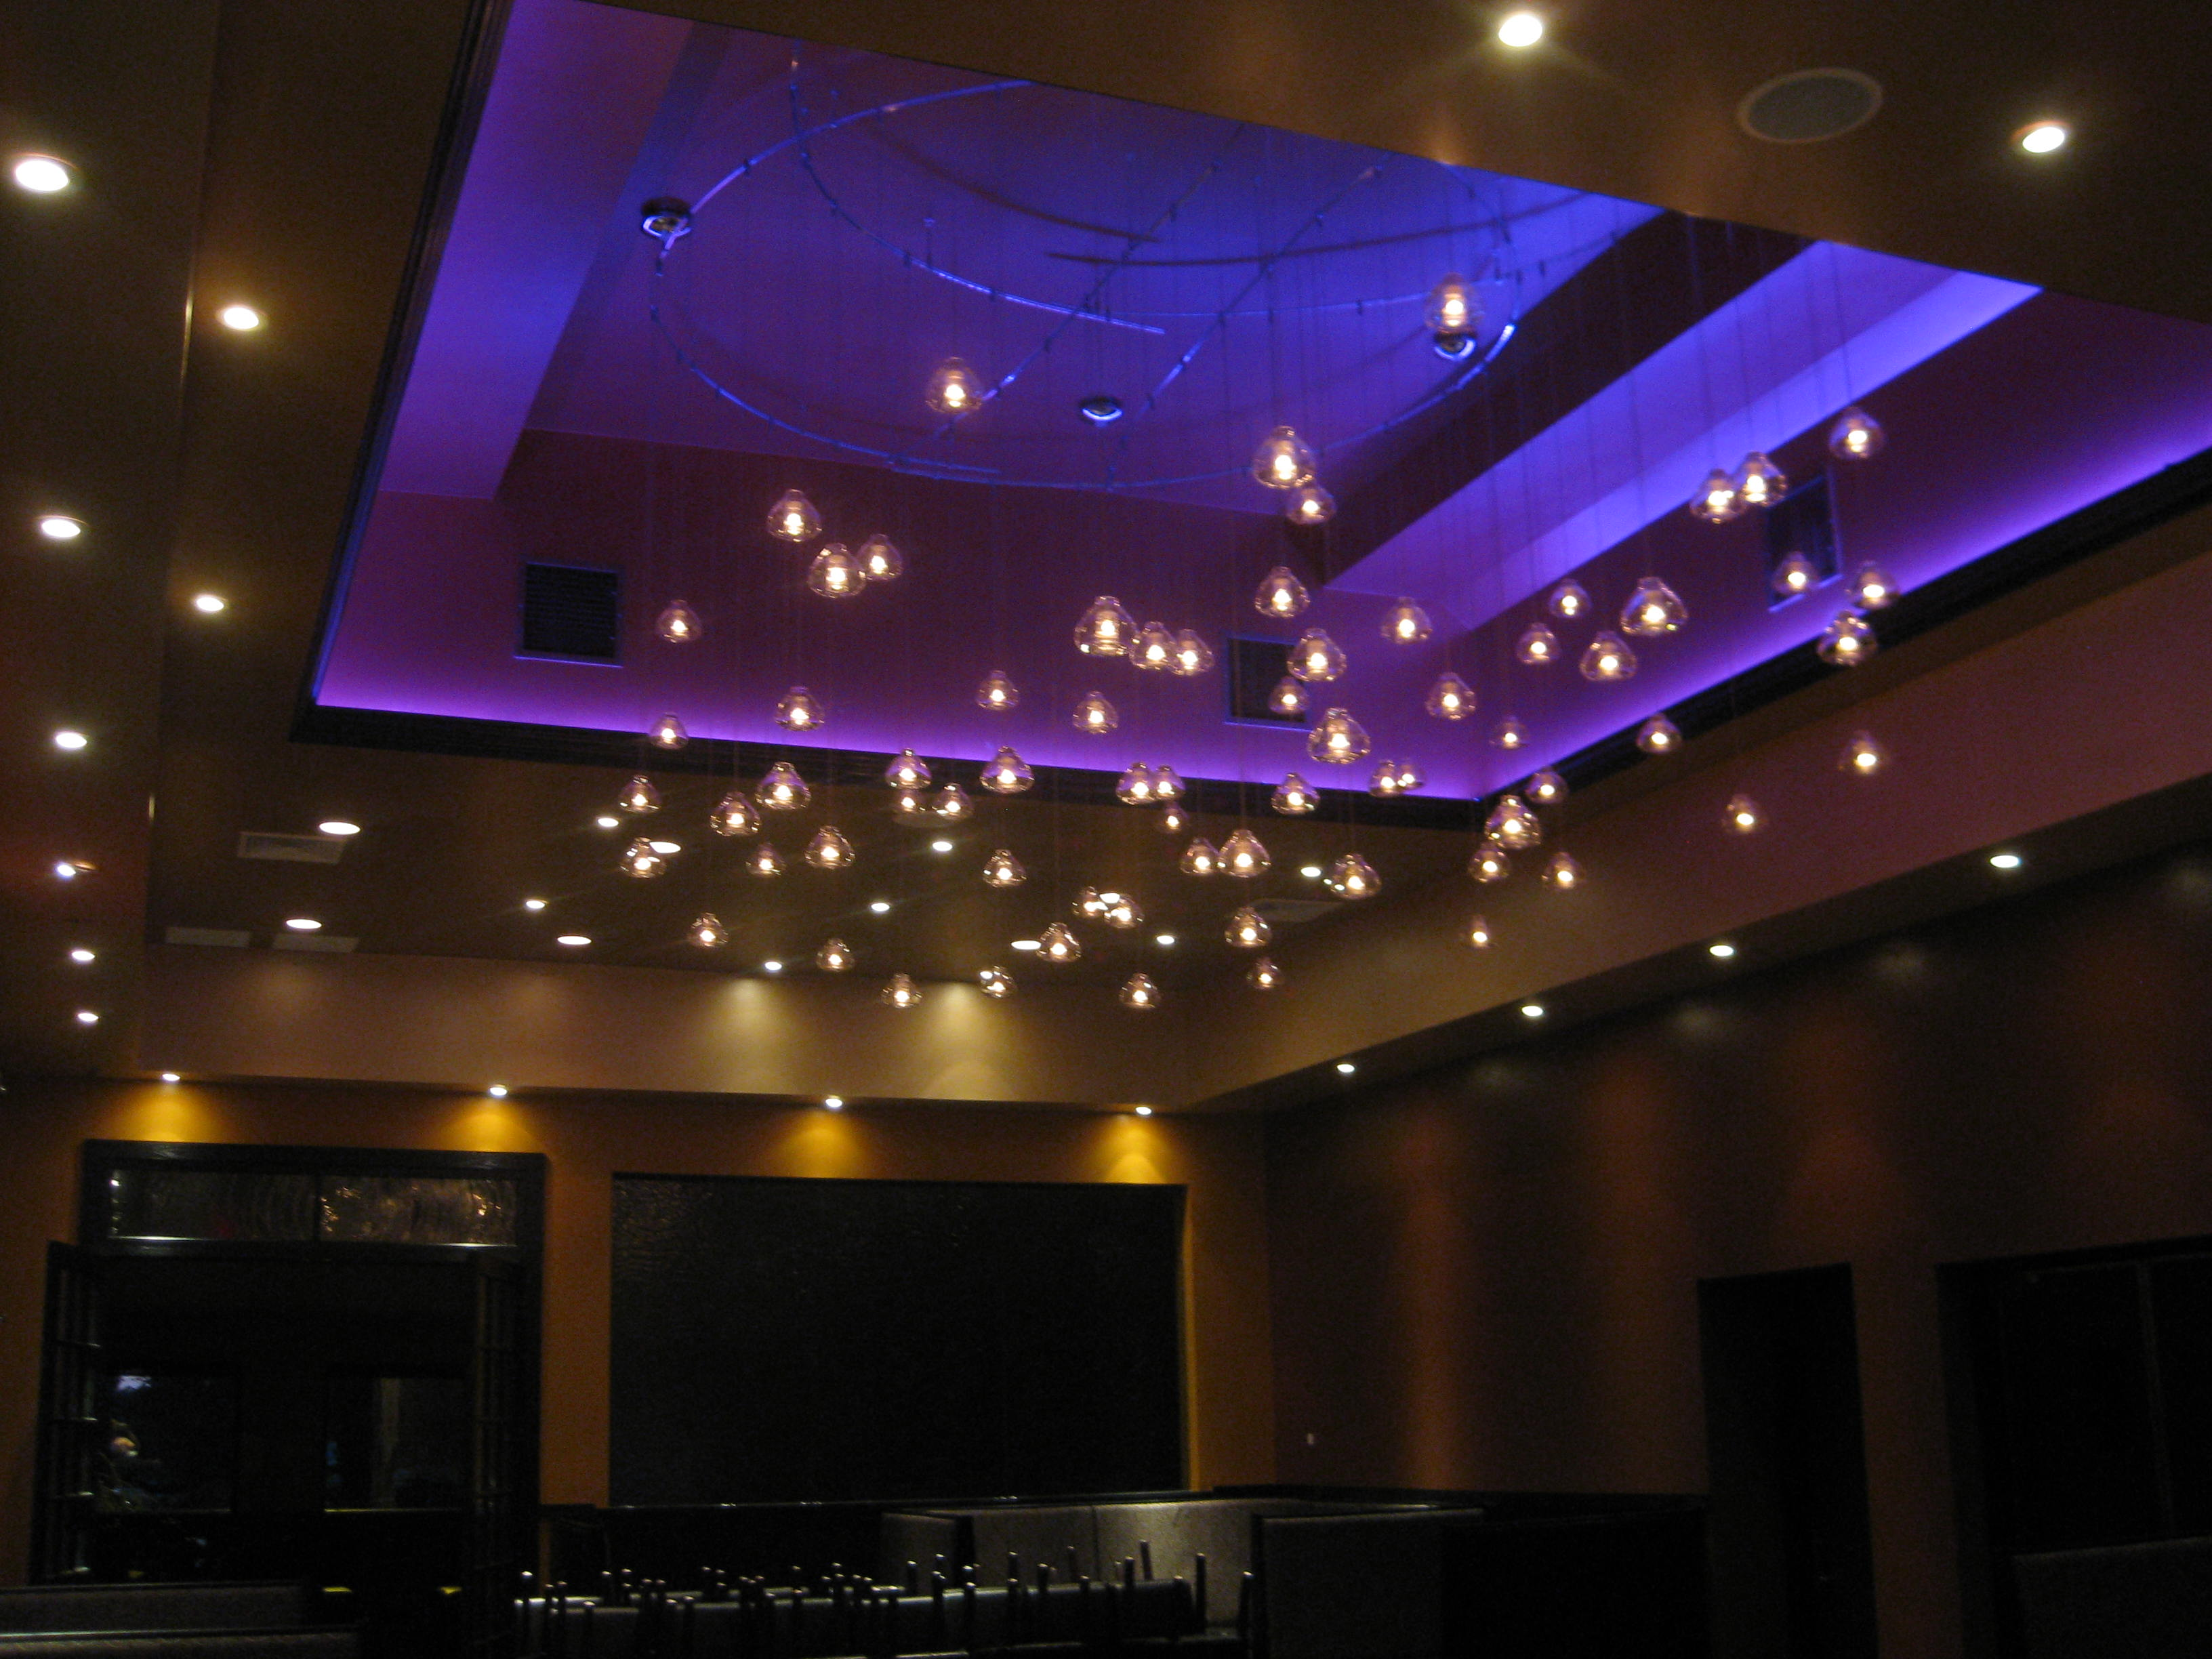 Ceiling Lights For Lounge : Luchento s ristorante